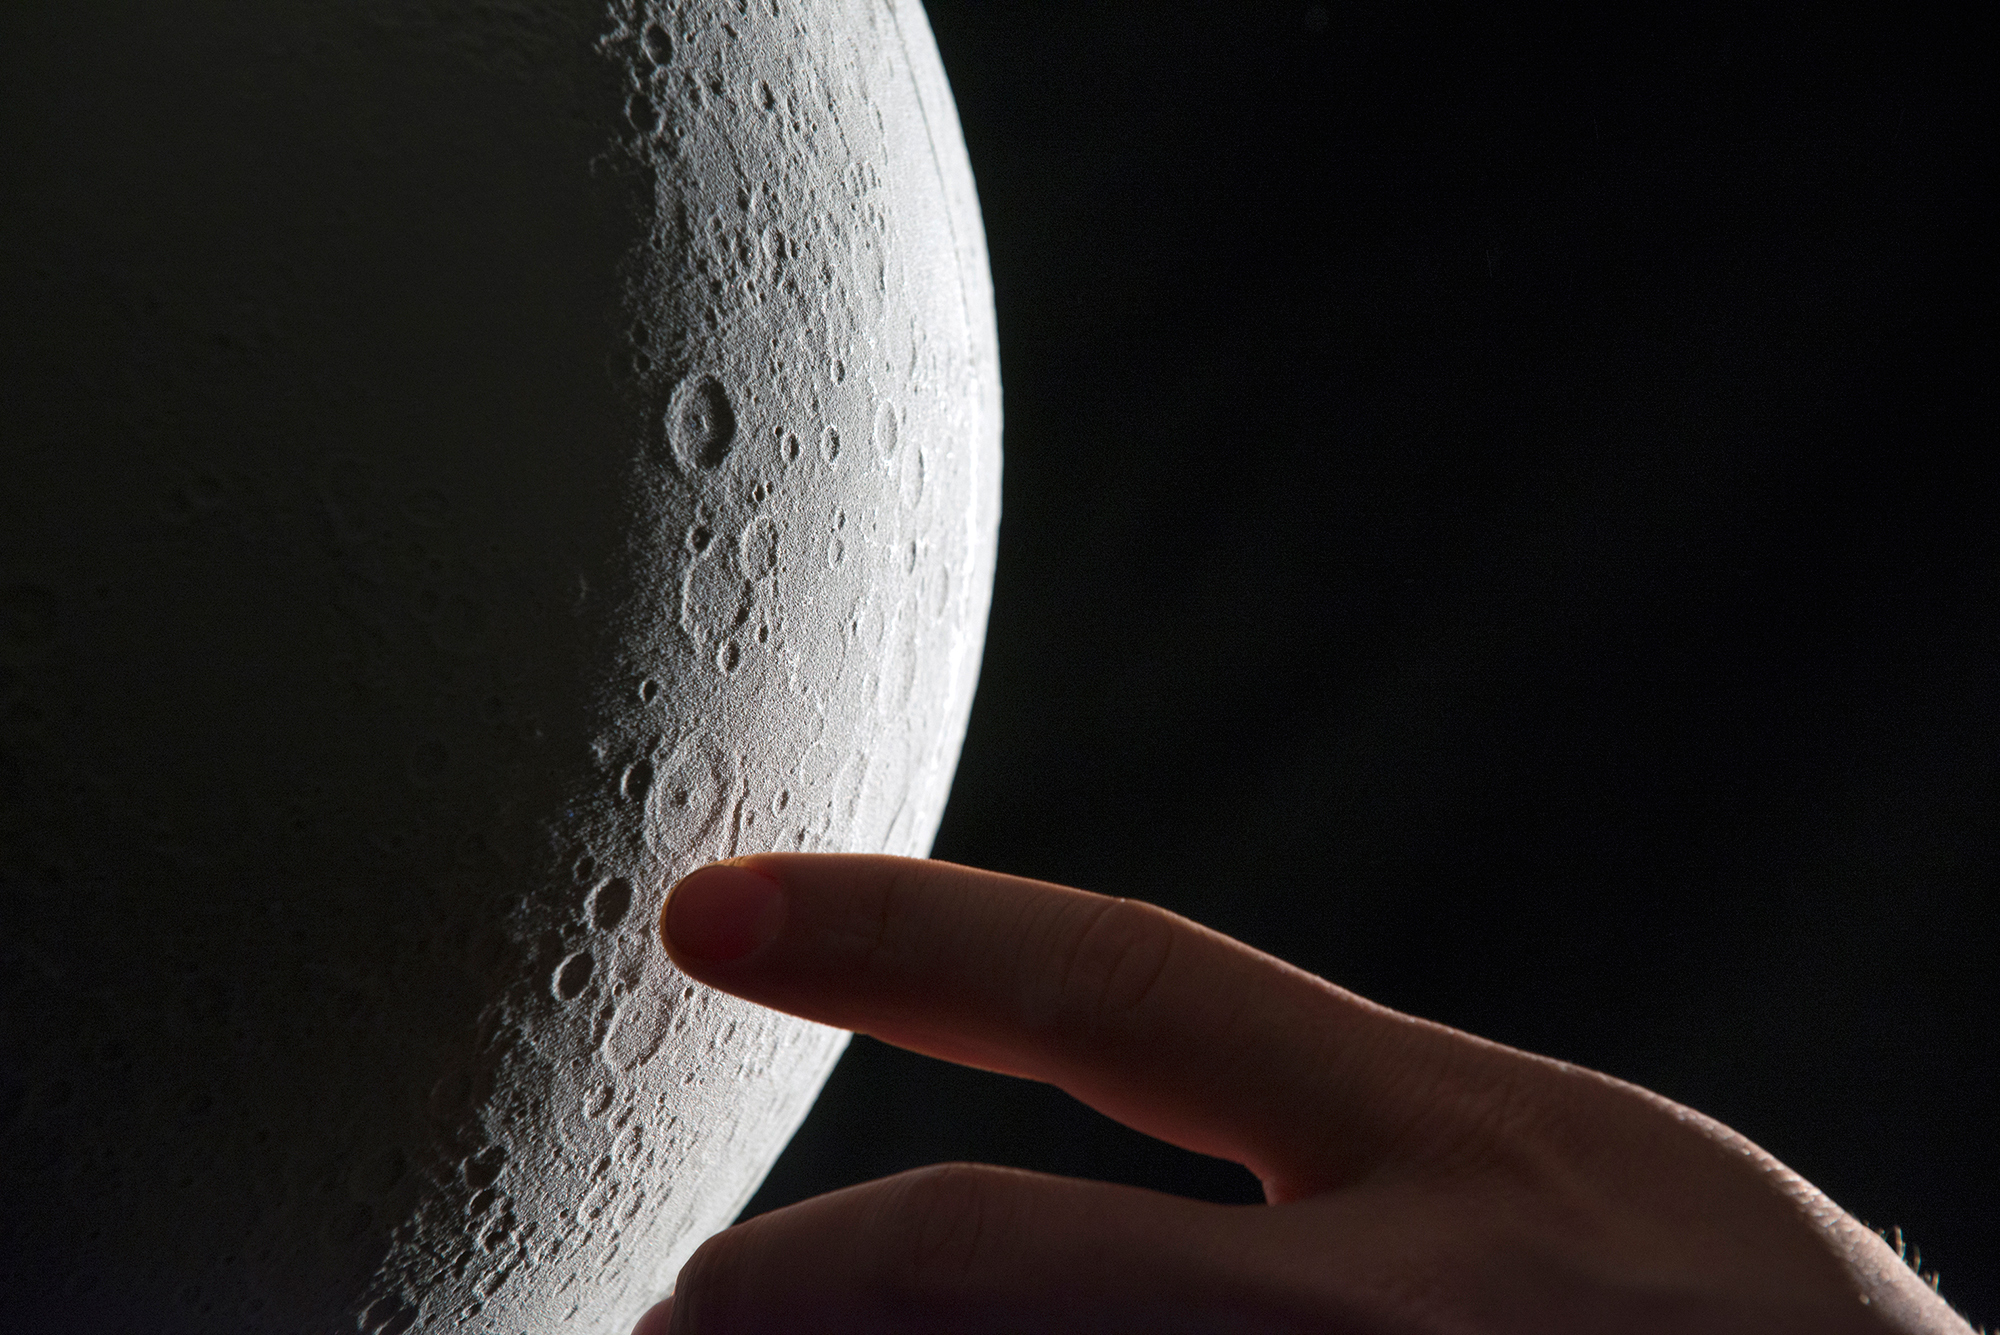 Incredible 3D printed Moon model